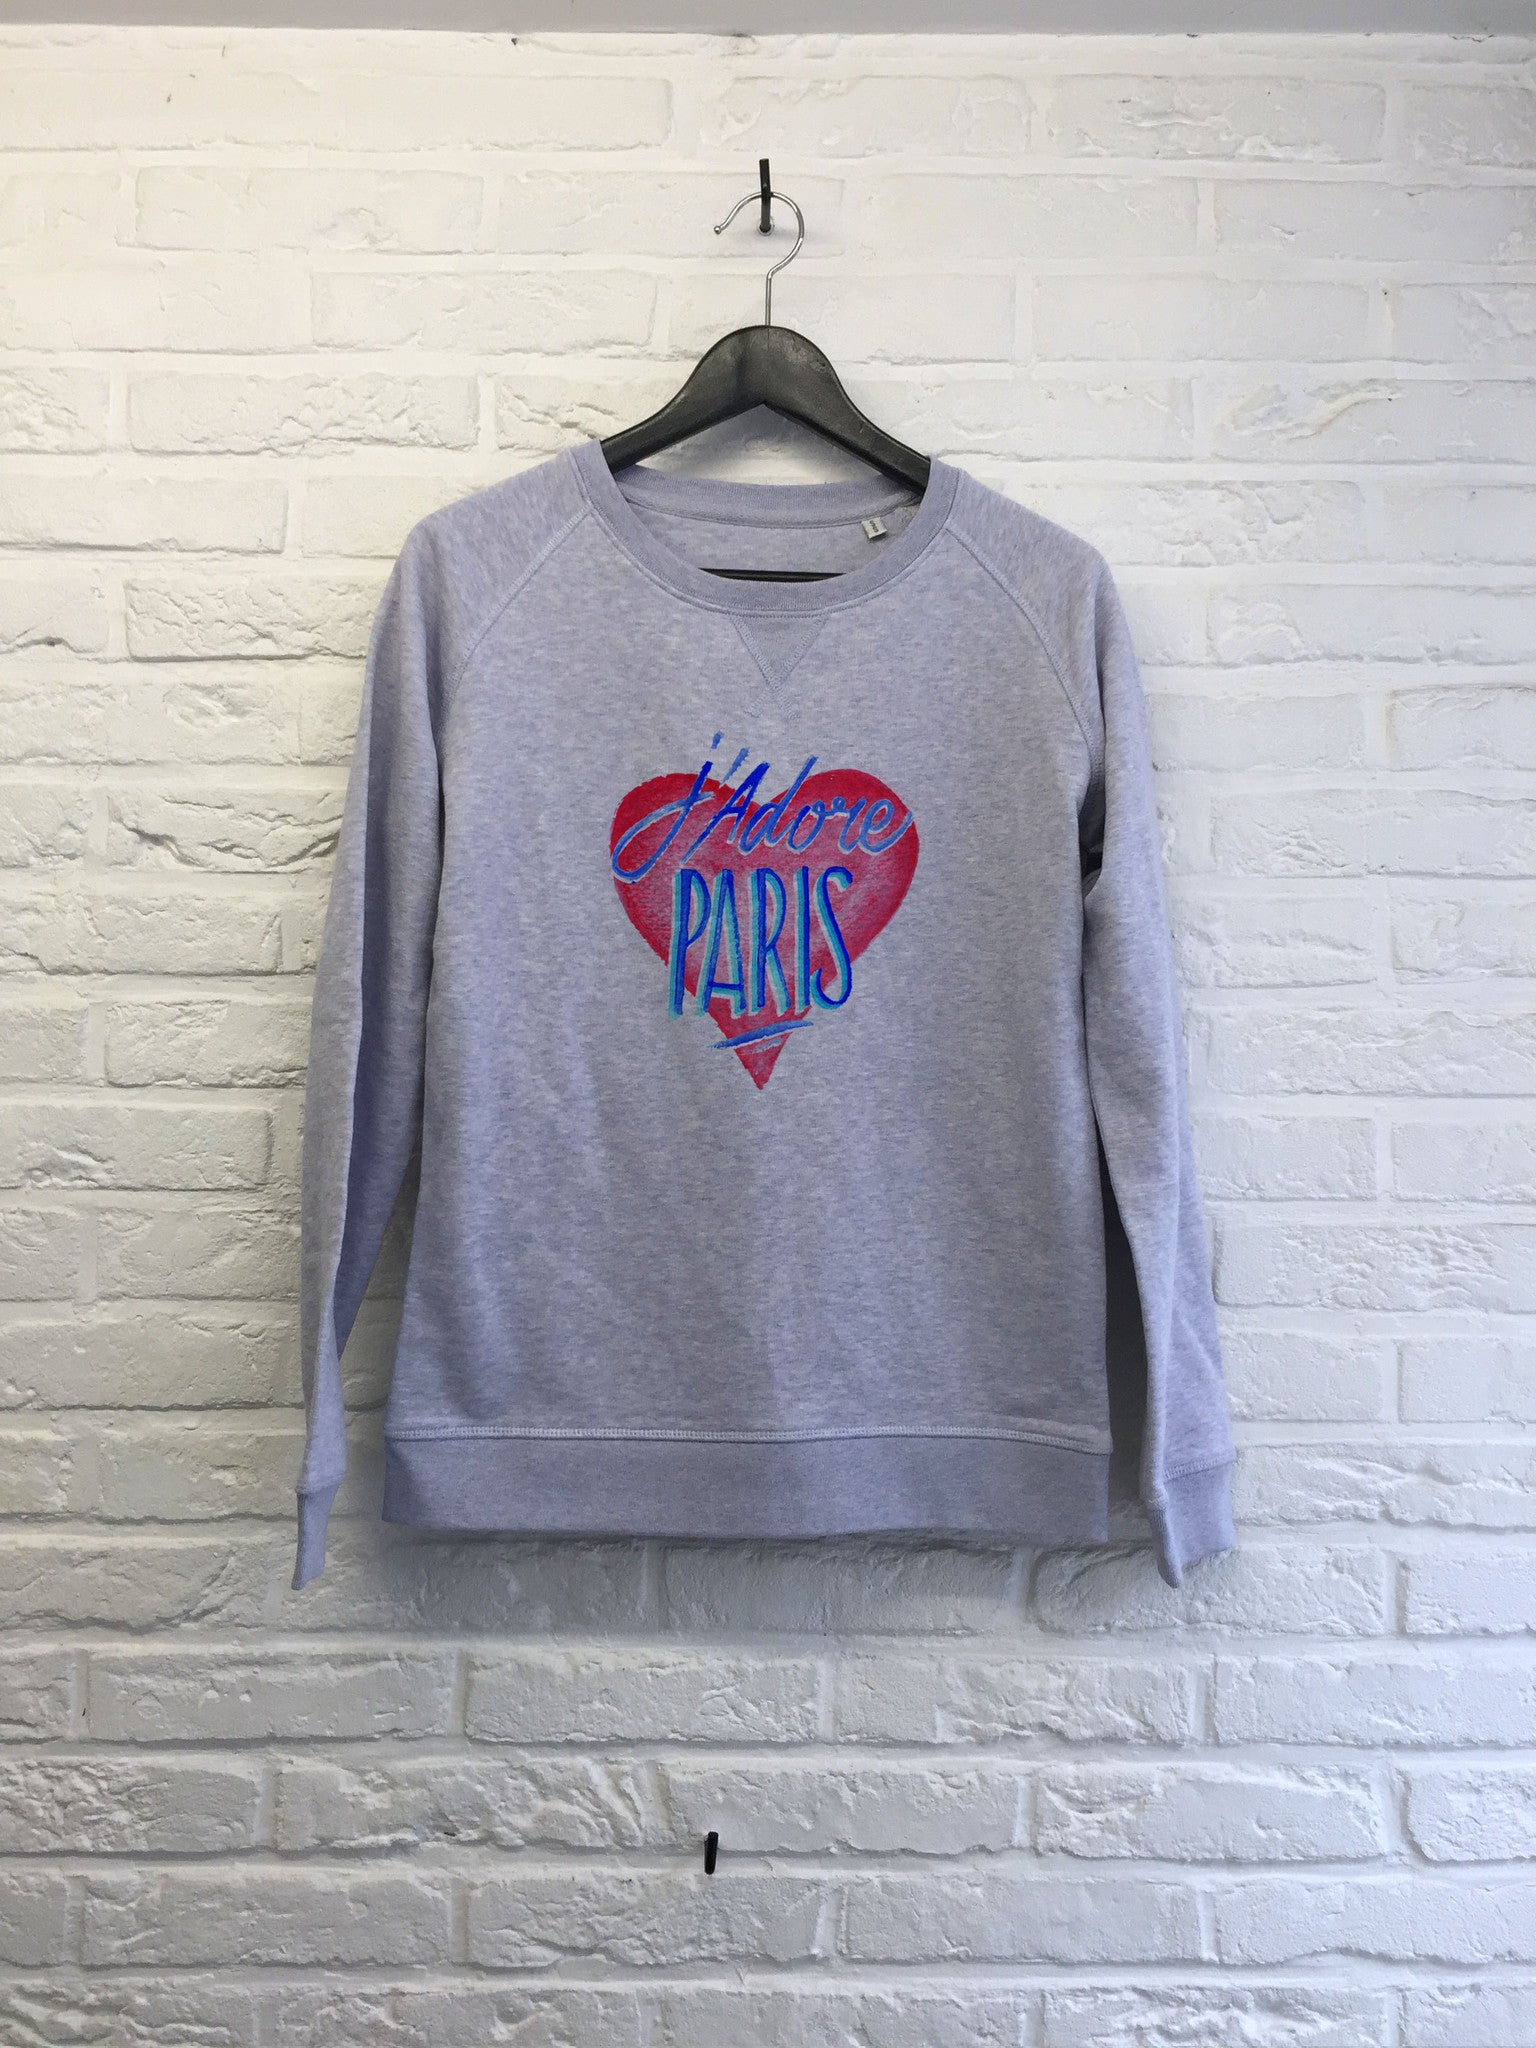 TH Gallery - J'adore Paris - Sweat - Femme-Sweat shirts-Atelier Amelot